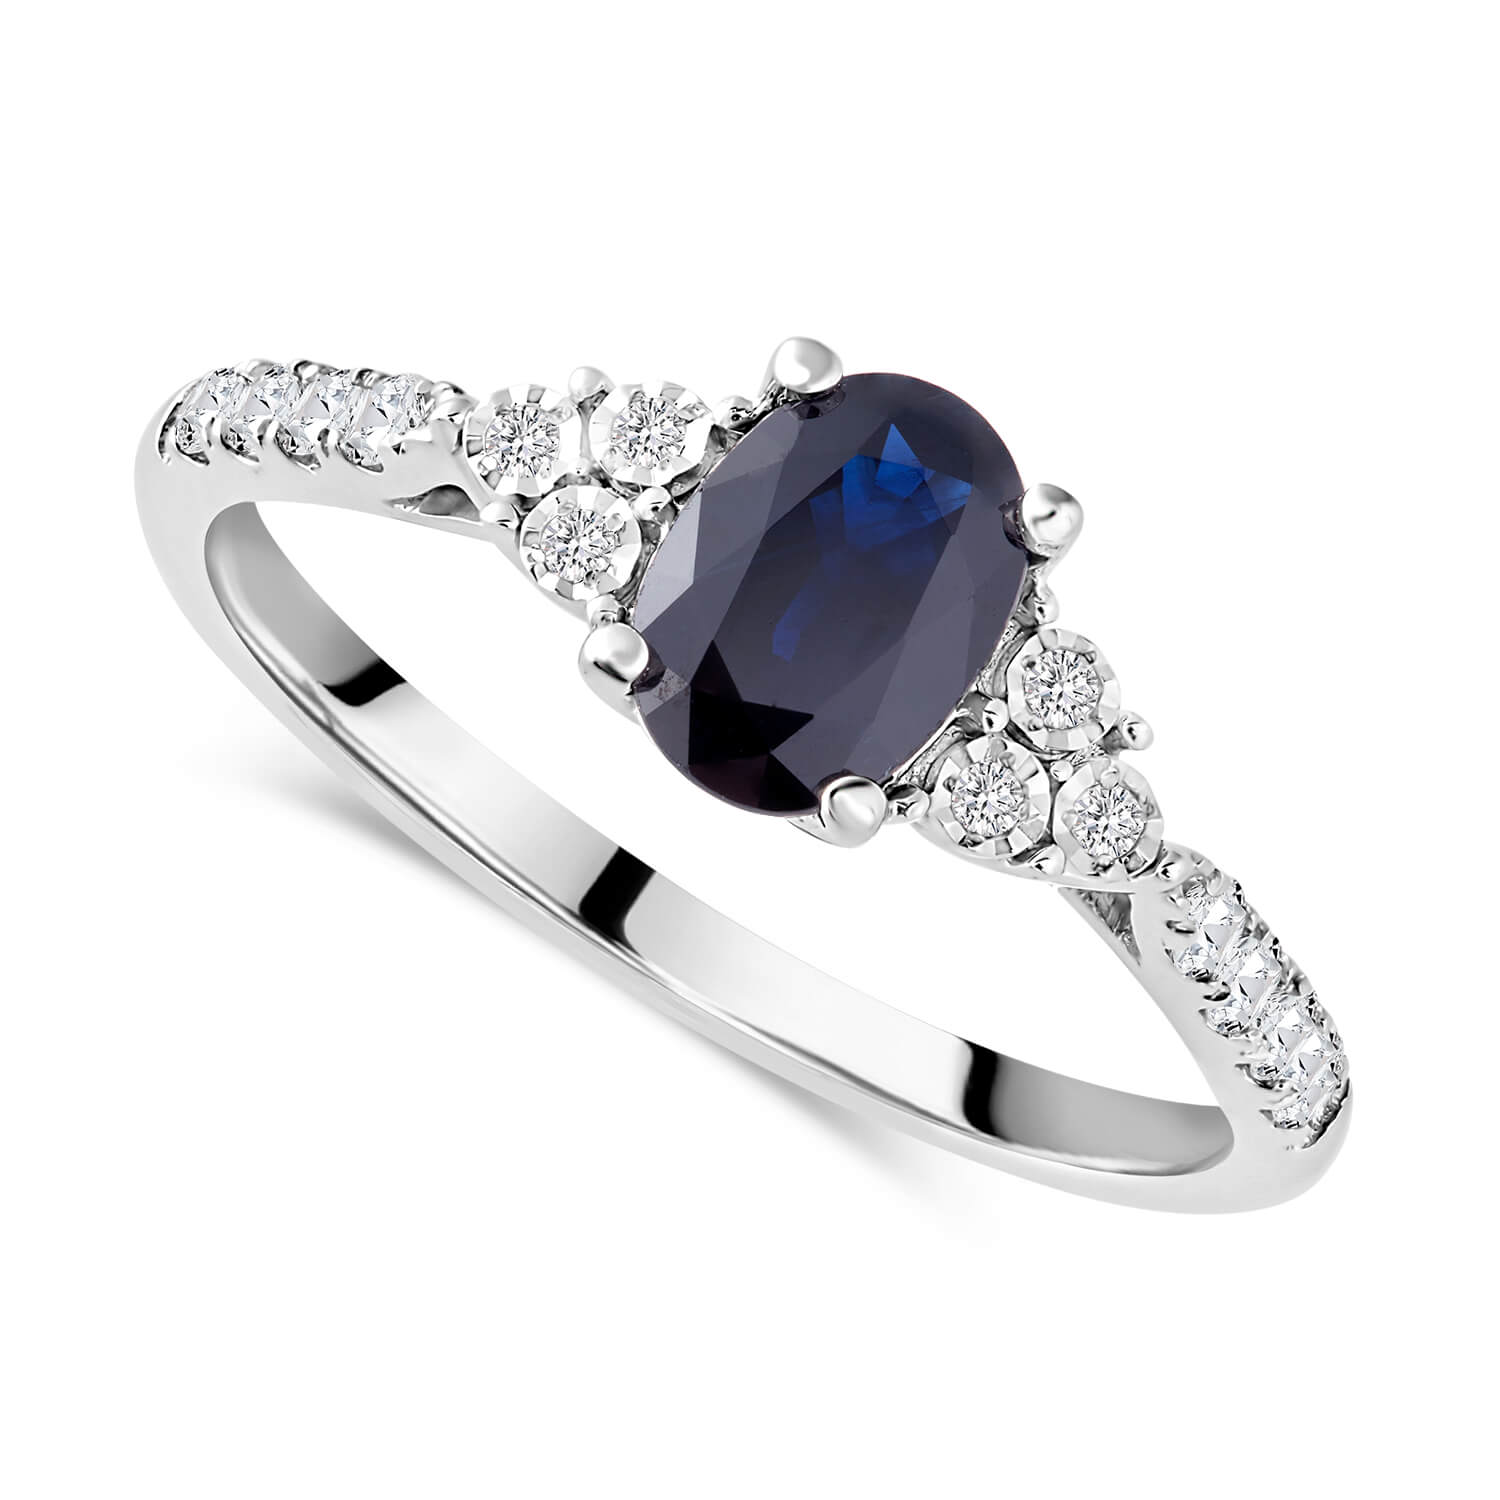 Ladies 9ct White Gold Diamond and Sapphire Ring